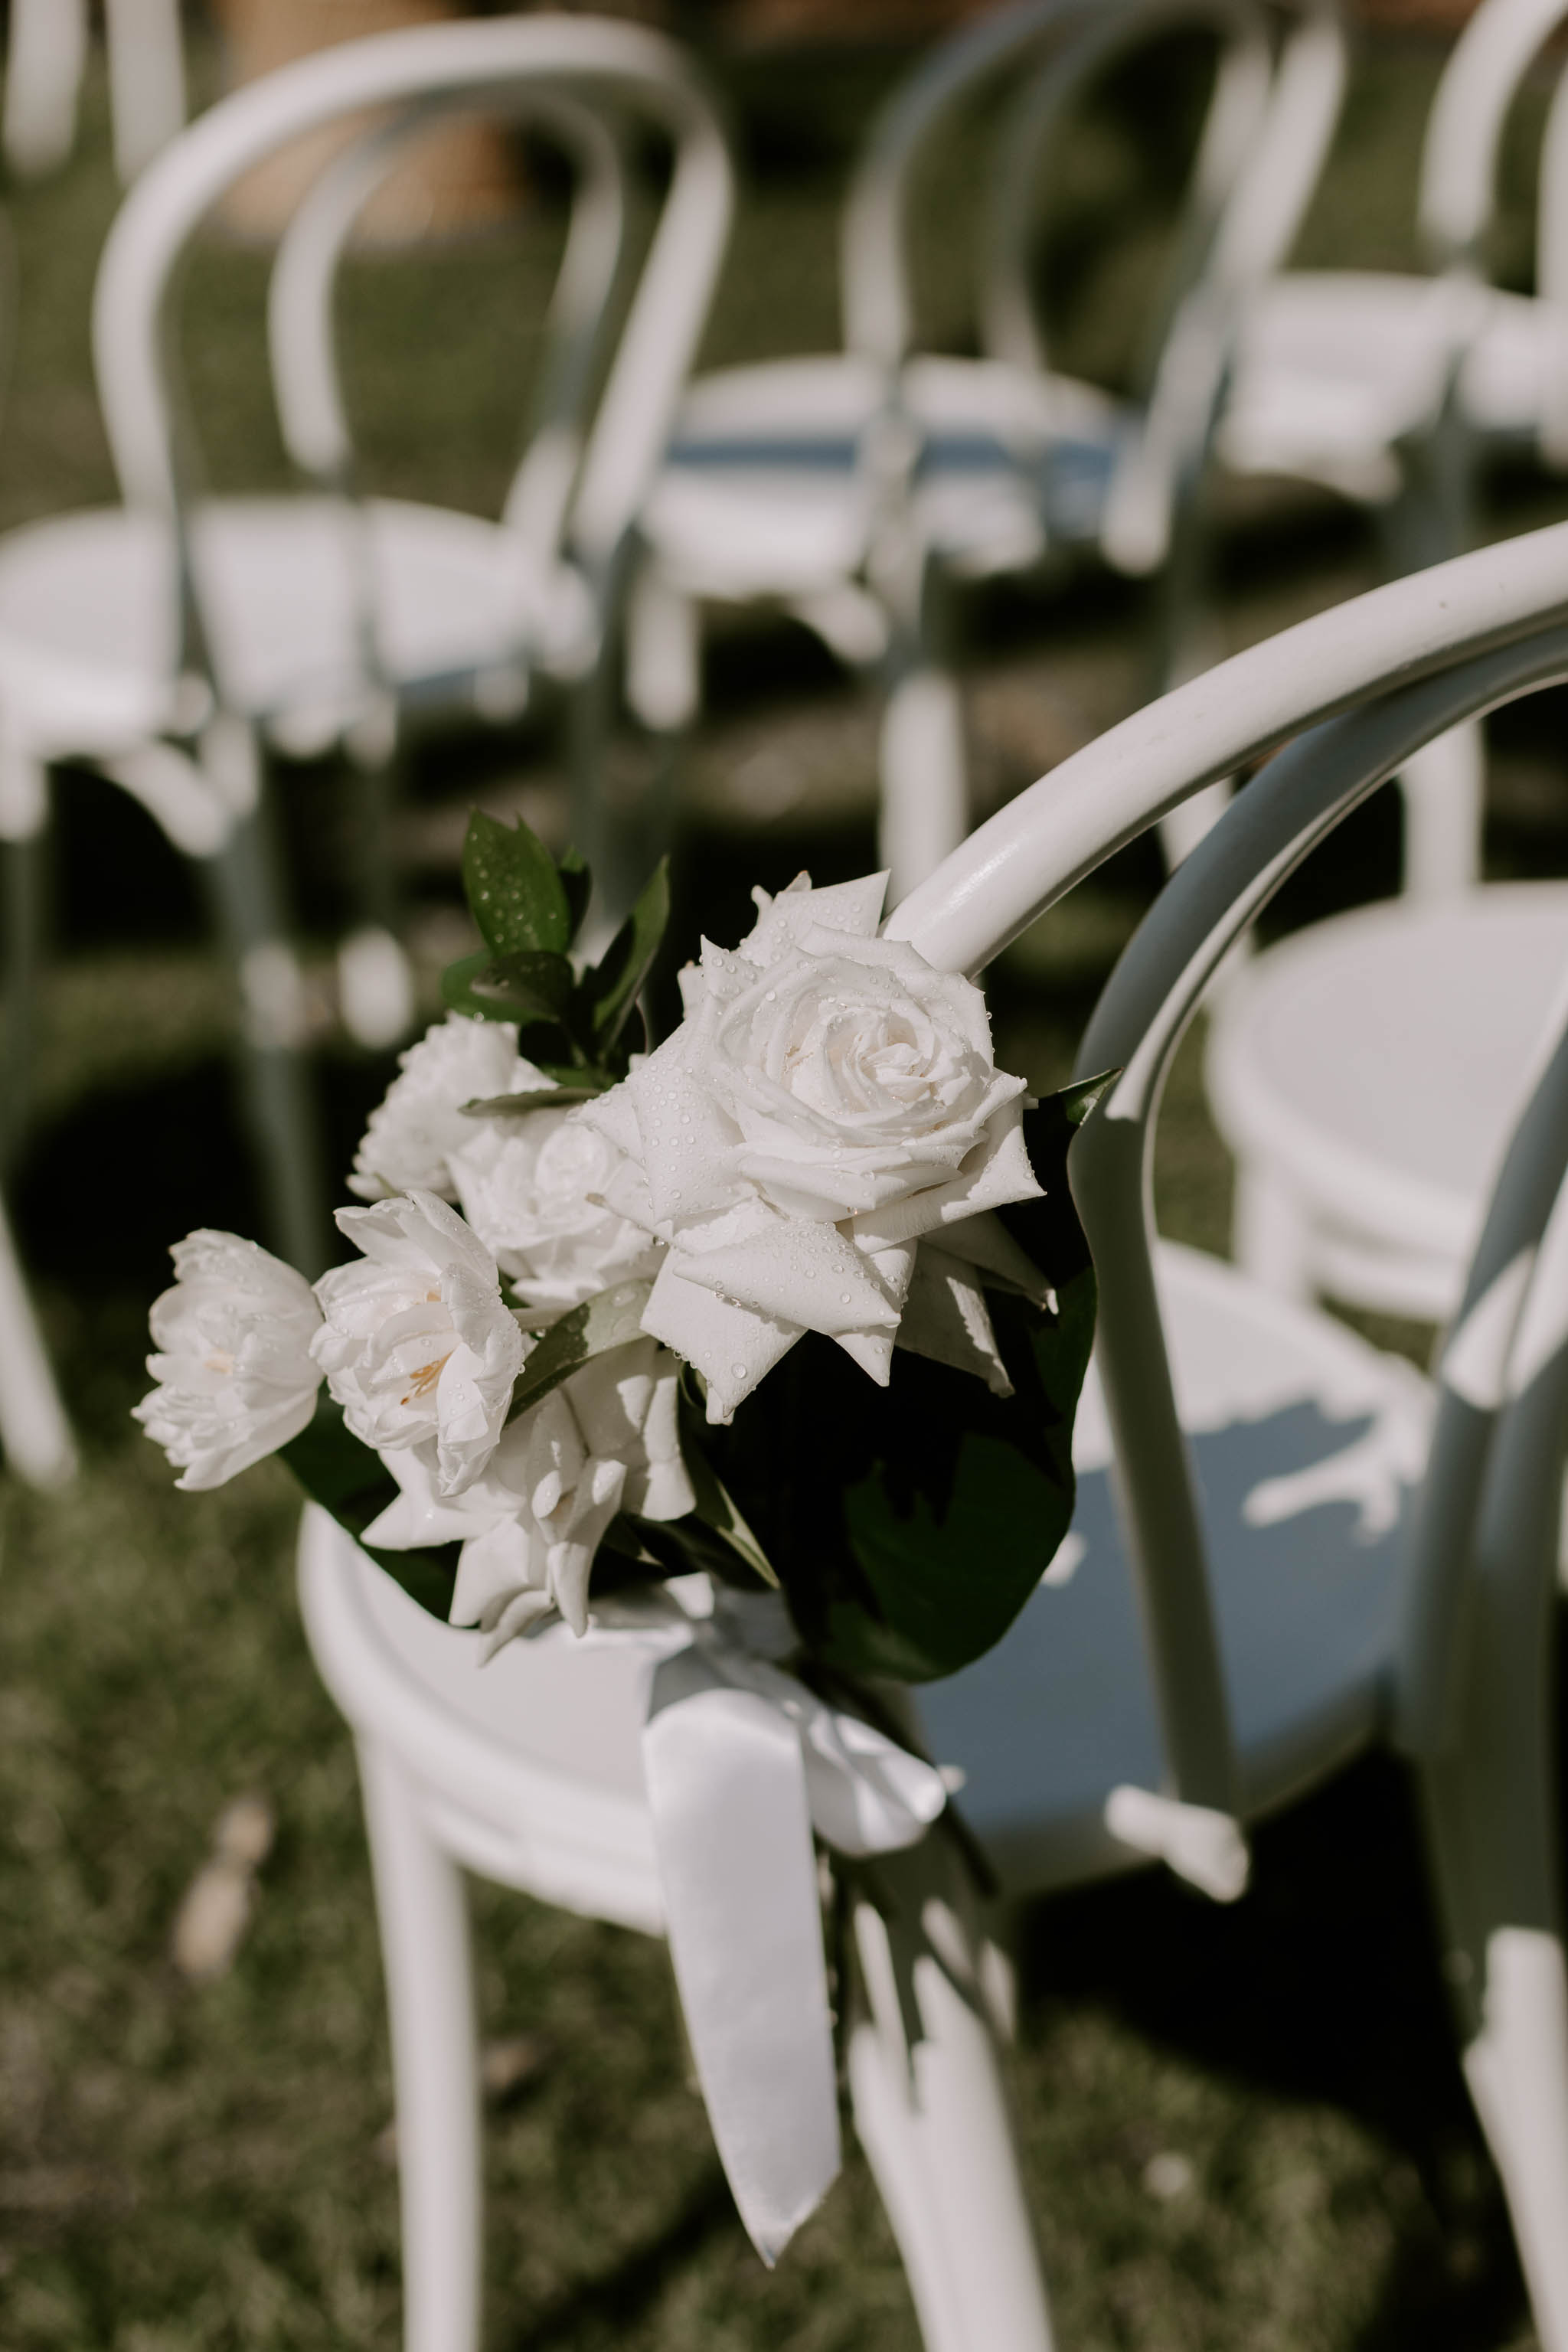 Chair posies with white blooms and tropical leaves